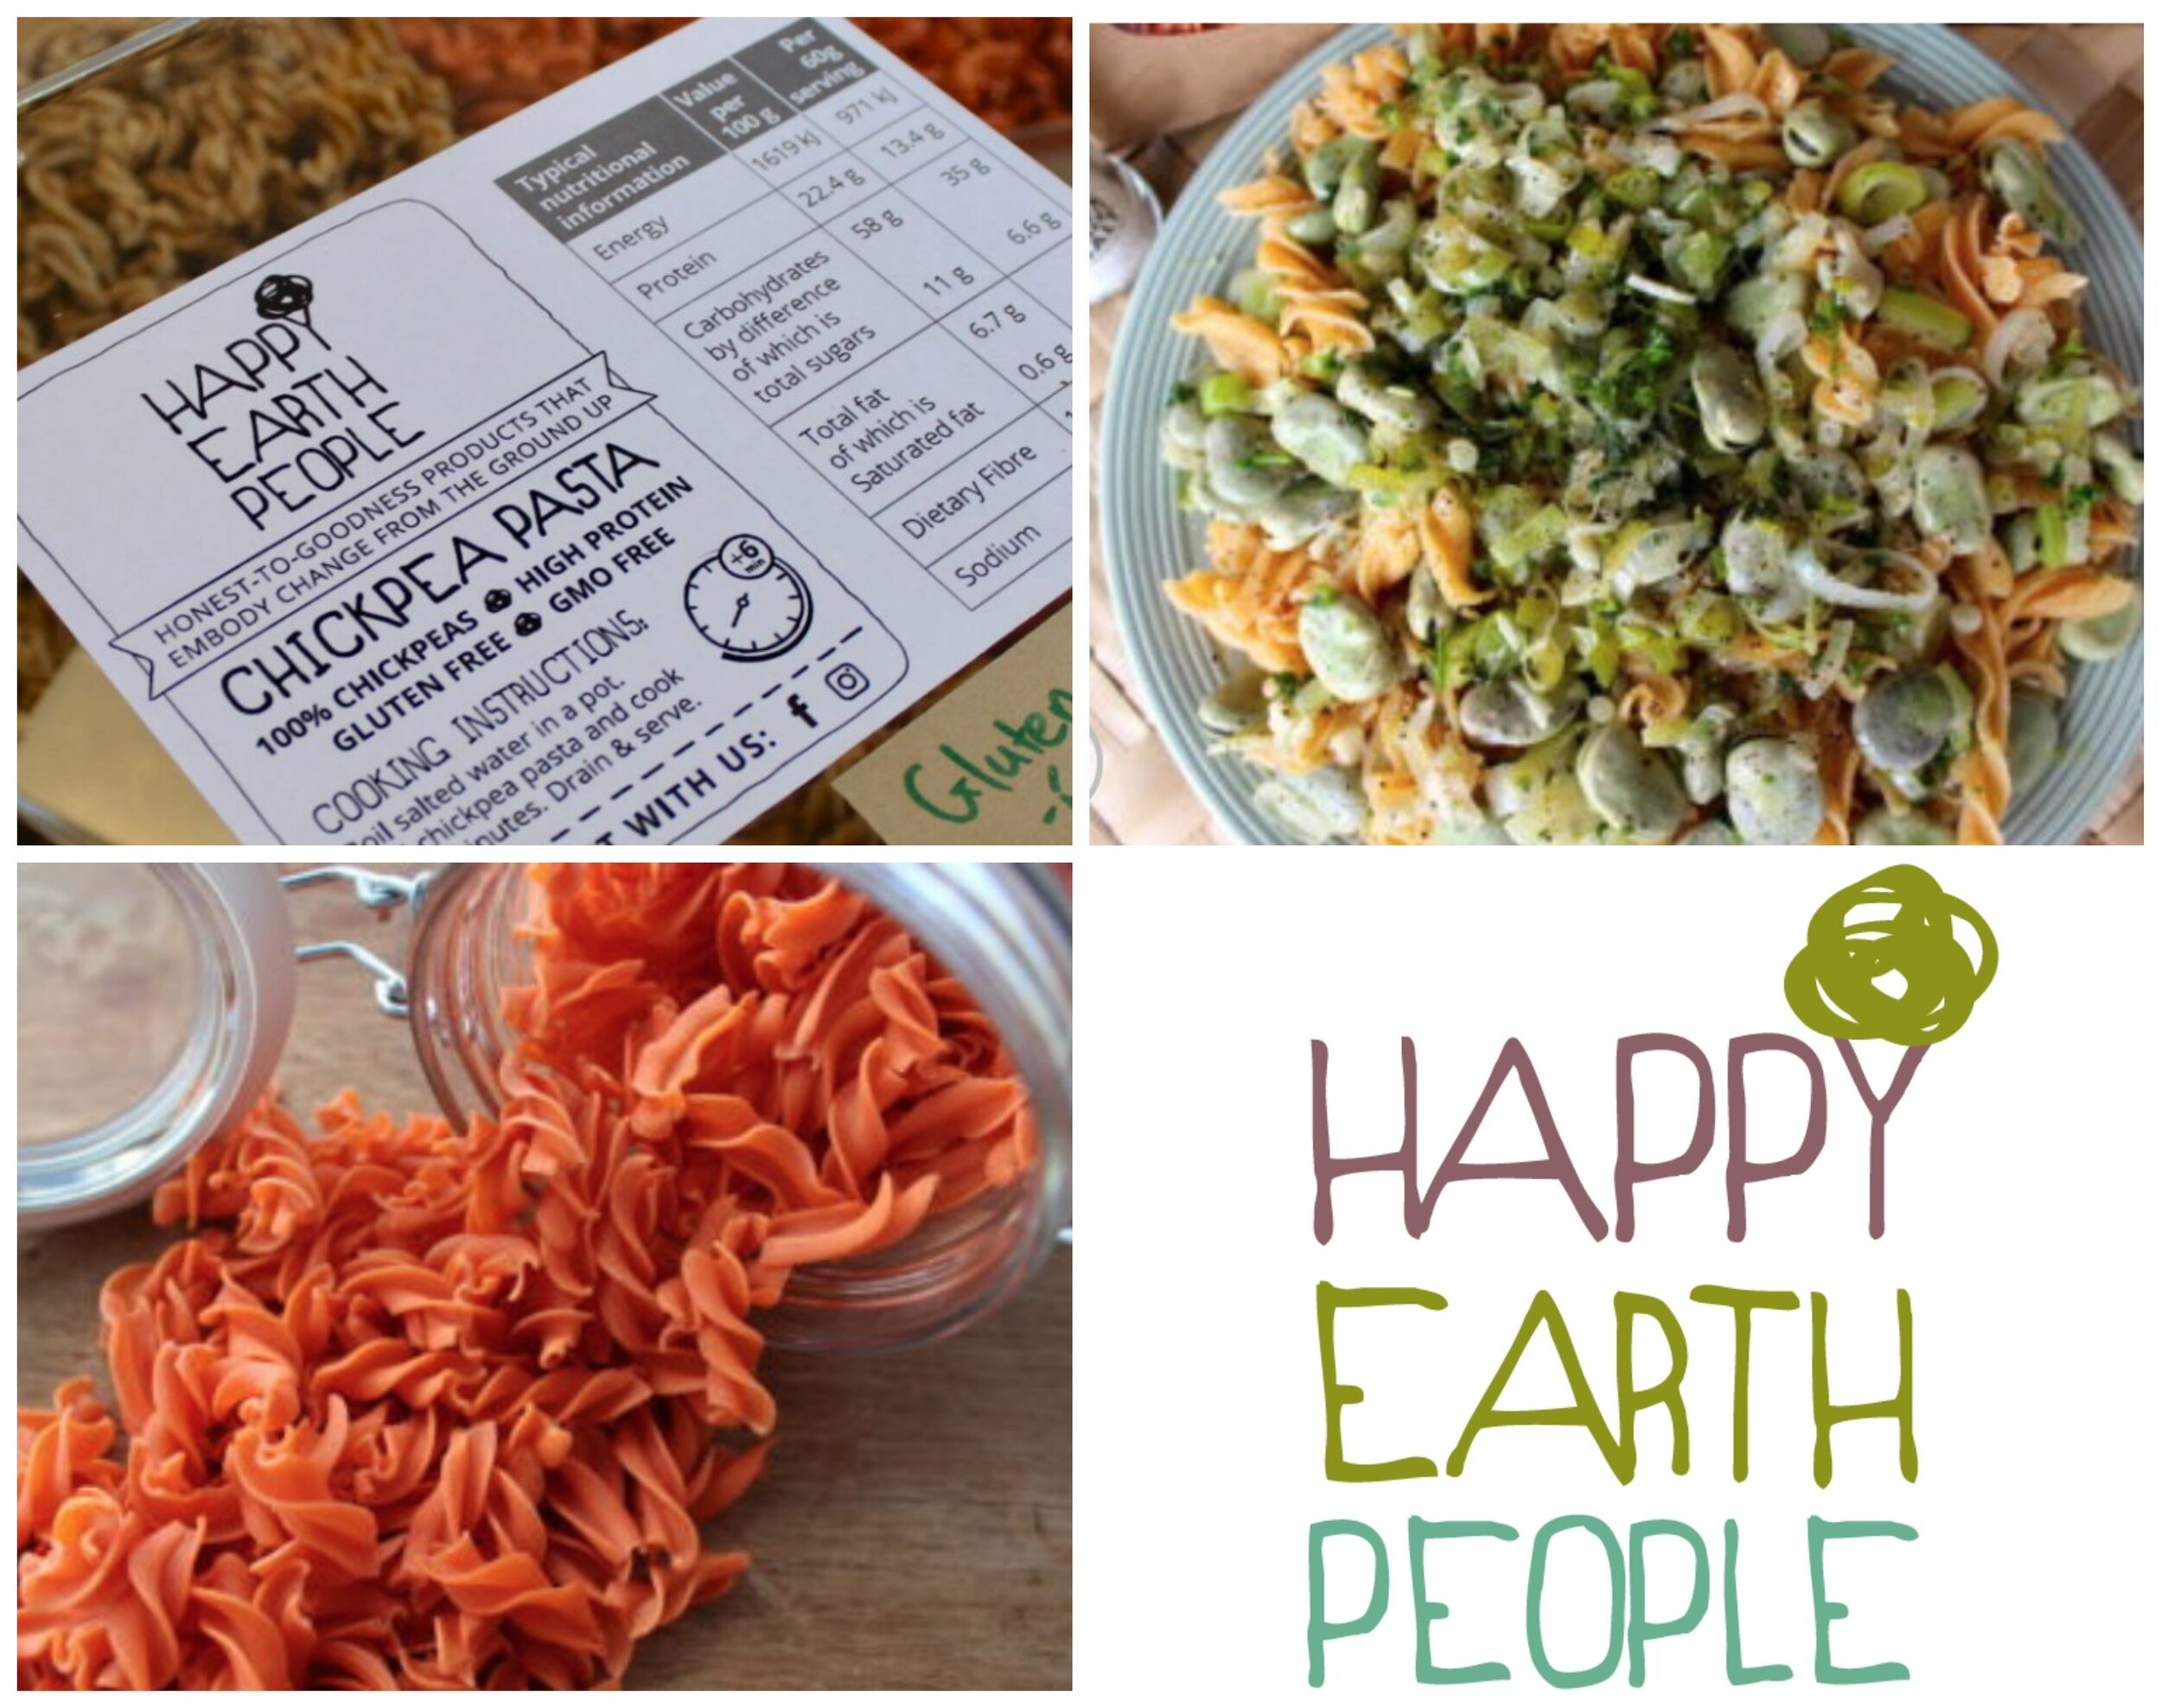 Happy-Earth-People-Collage2.jpg